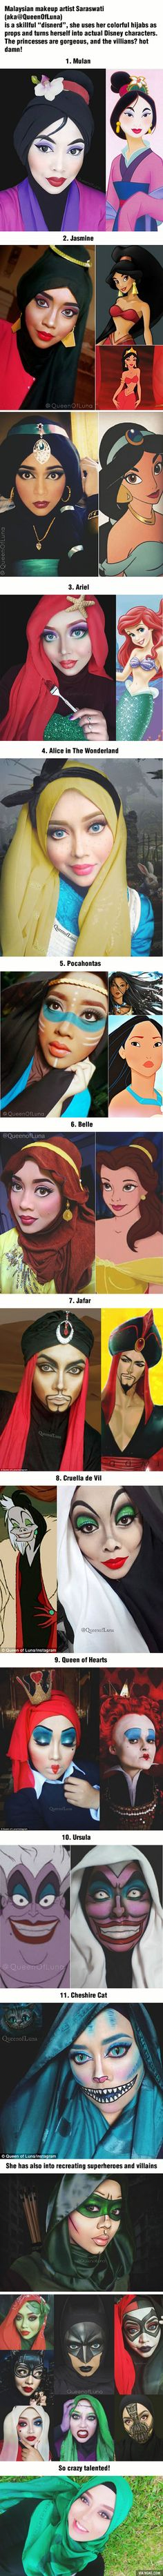 Malaysian Makeup Artist Saraswati (@QueenofLuna) transforms into stunning Disney characters using her hijab ~ her idea is amazing! And she looks stunning indeed